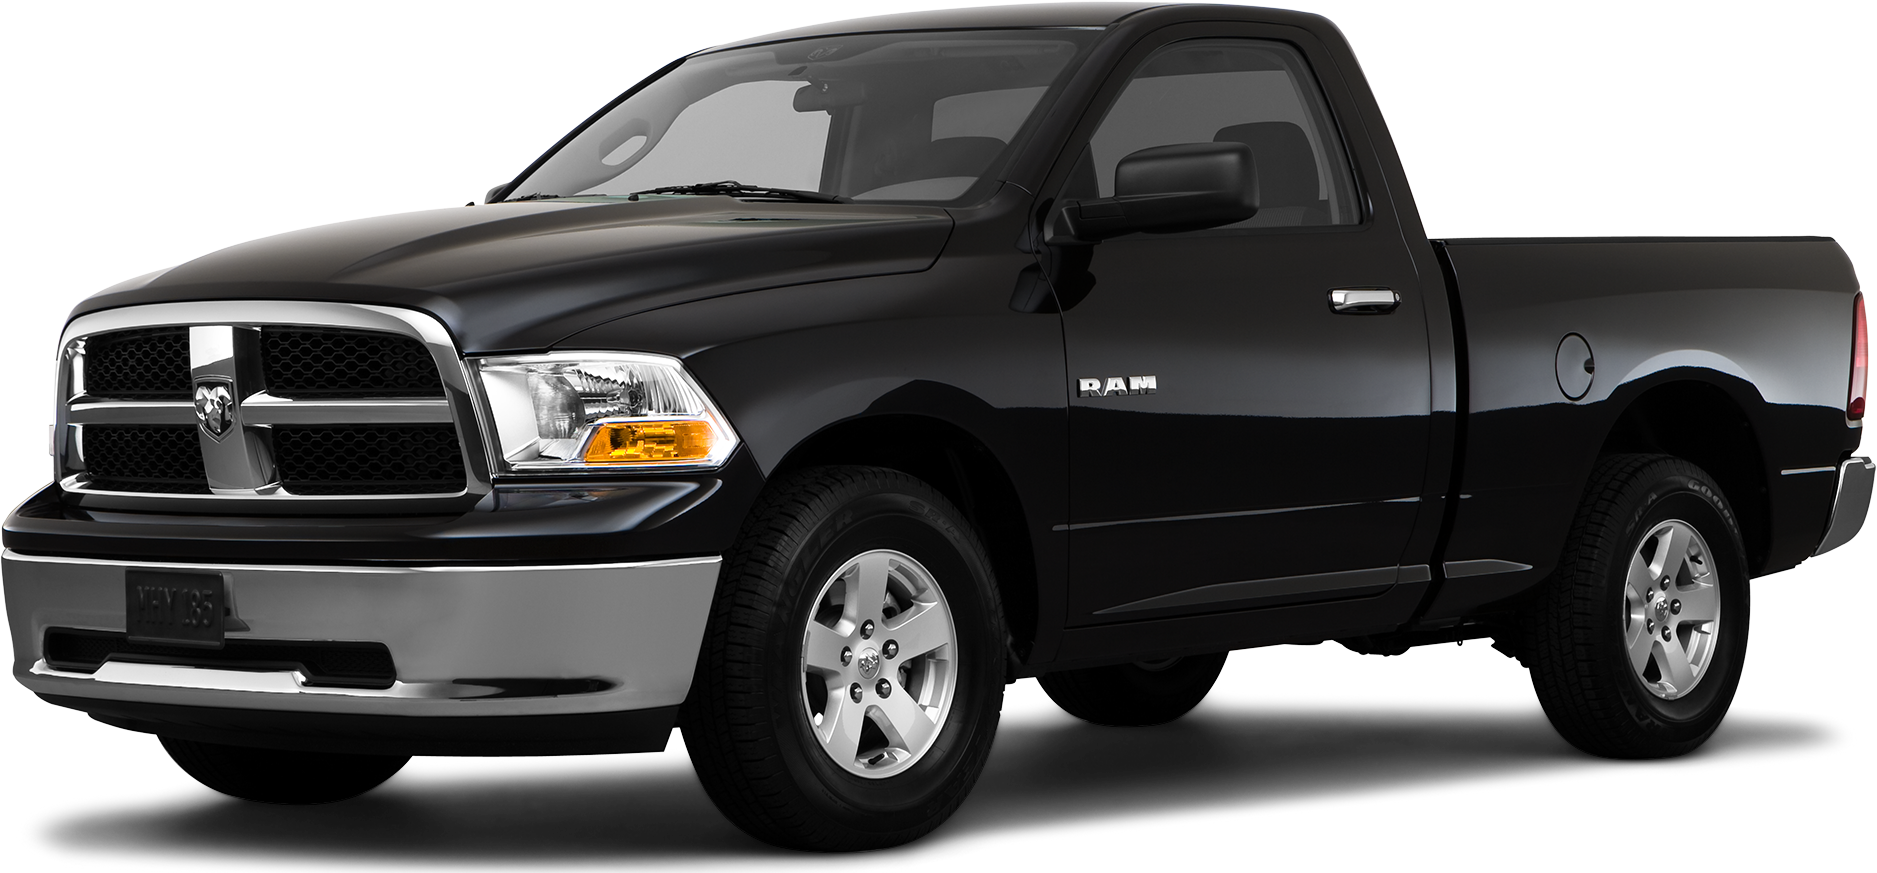 2010 Ford F150 Super Cab | Pricing, Ratings, Expert Review